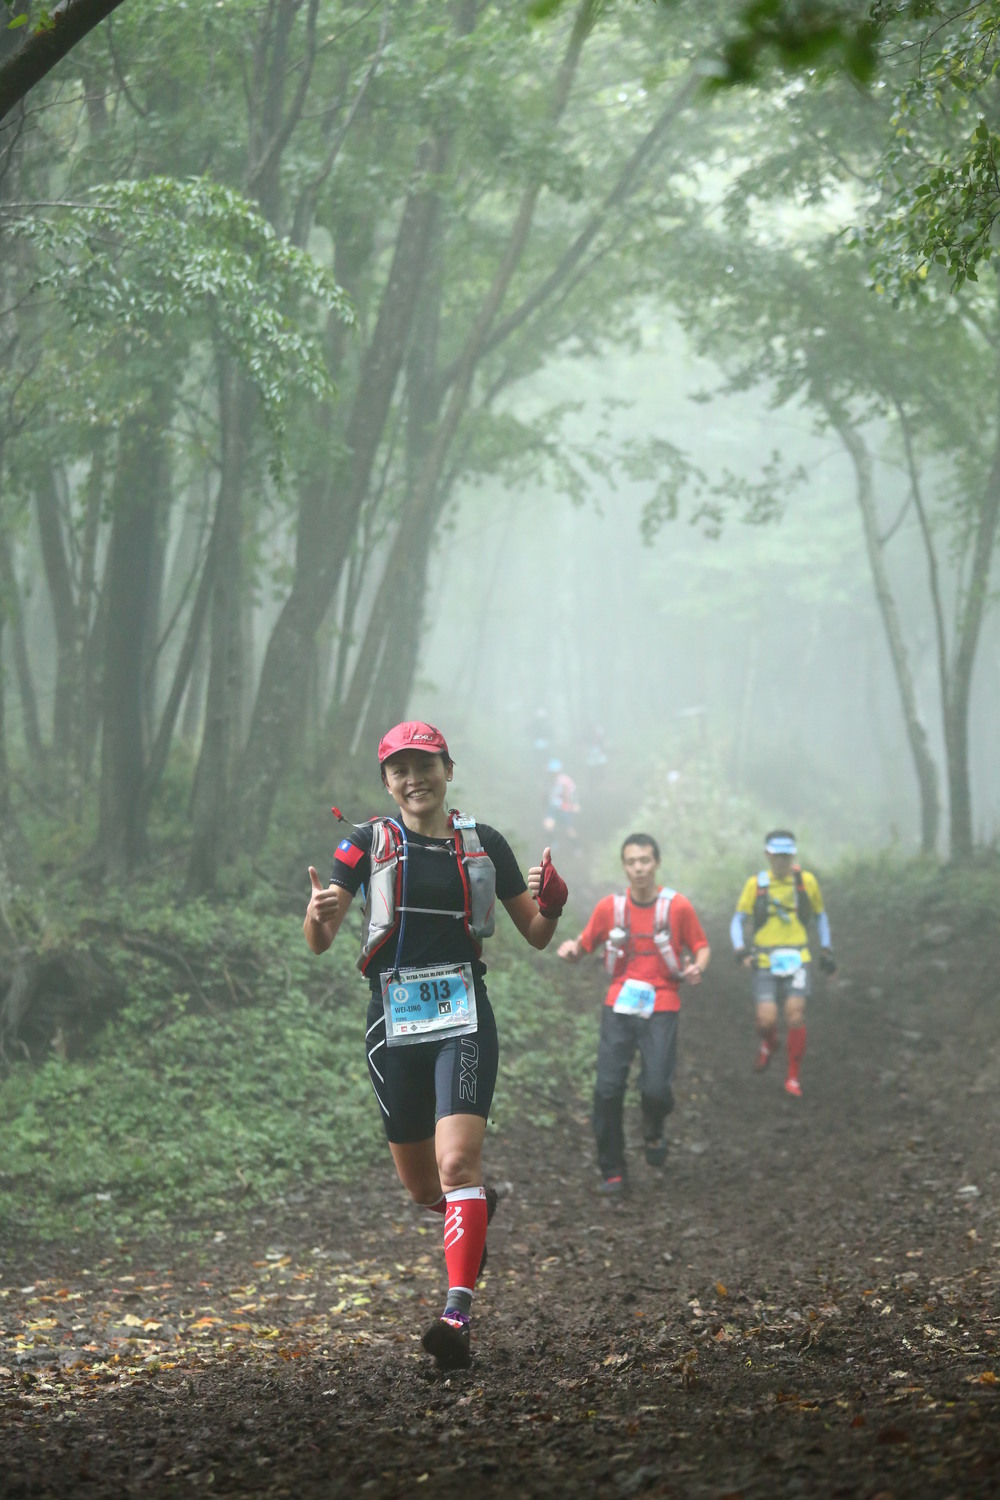 Talking Trail Running Asia Master And Run Courses Amongst The Flattest On Global Ironman Circuit Most Important Thing For Overseas Participants Is To Right Way Without Spending Too Much Time Finding Routes I Wish All Organizers Could